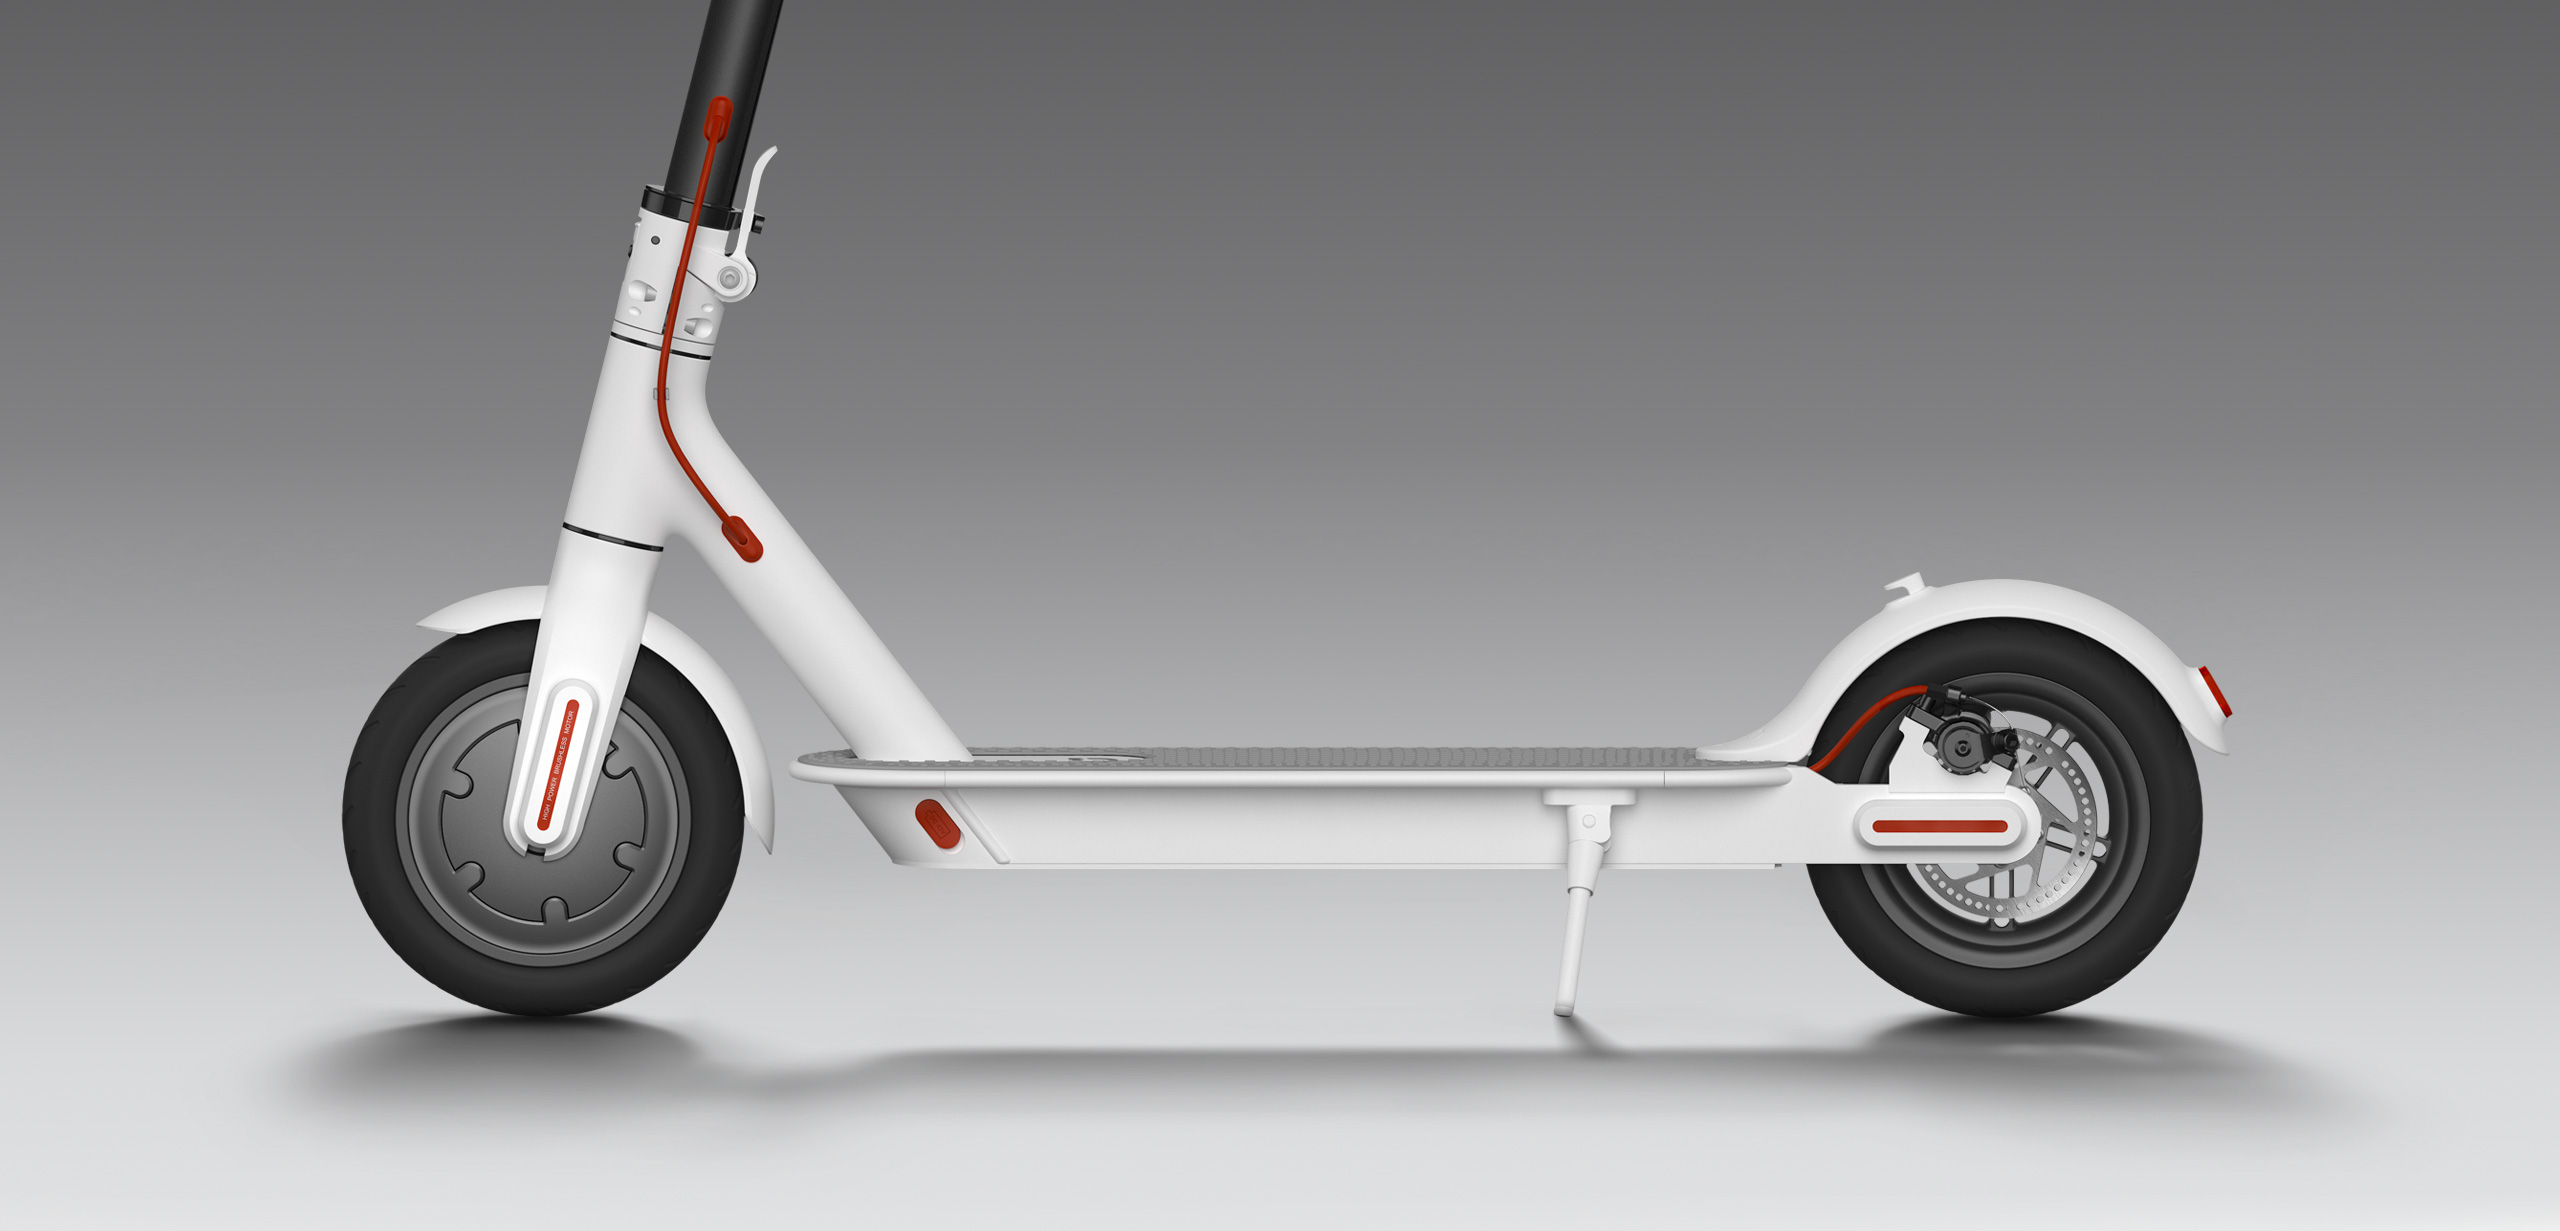 http://gyroskuter.ru/images/upload/xiaomi-mi-scooter-1.jpg